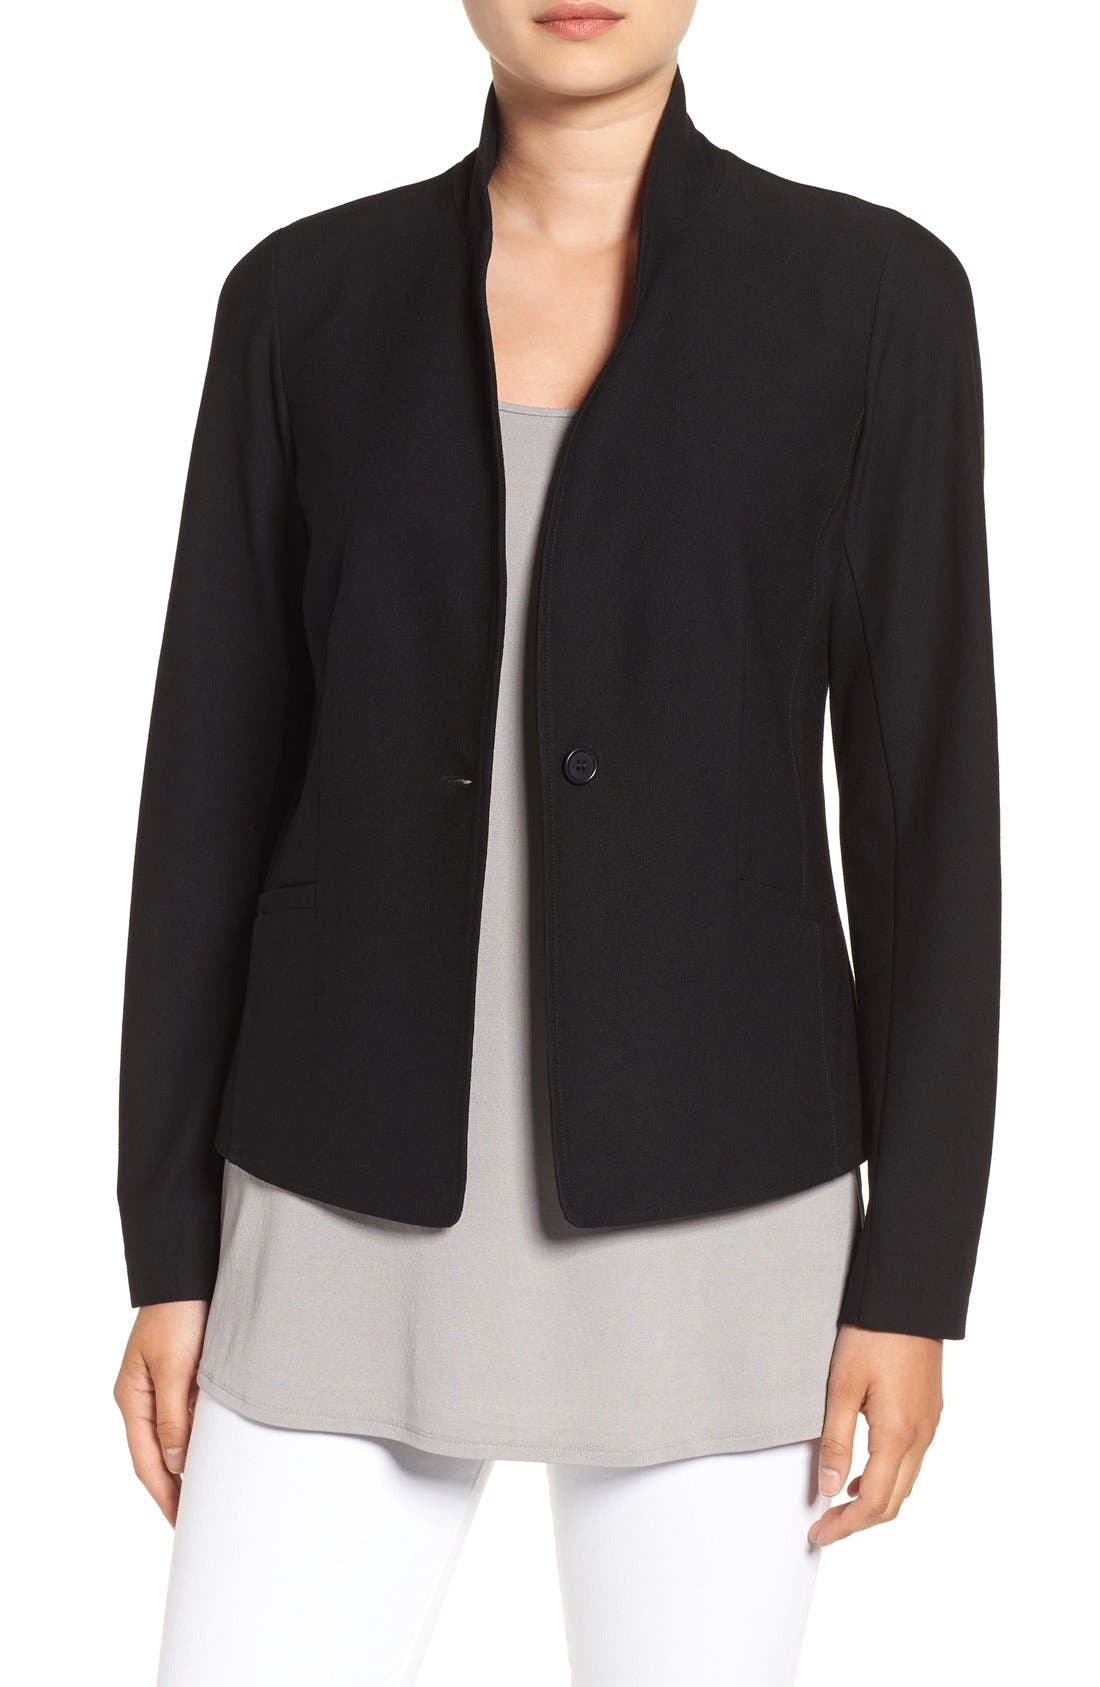 Alternate Image 1 Selected - Eileen Fisher Washable Stretch Crepe Jacket (Regular & Petite) (Nordstrom Exclusive)